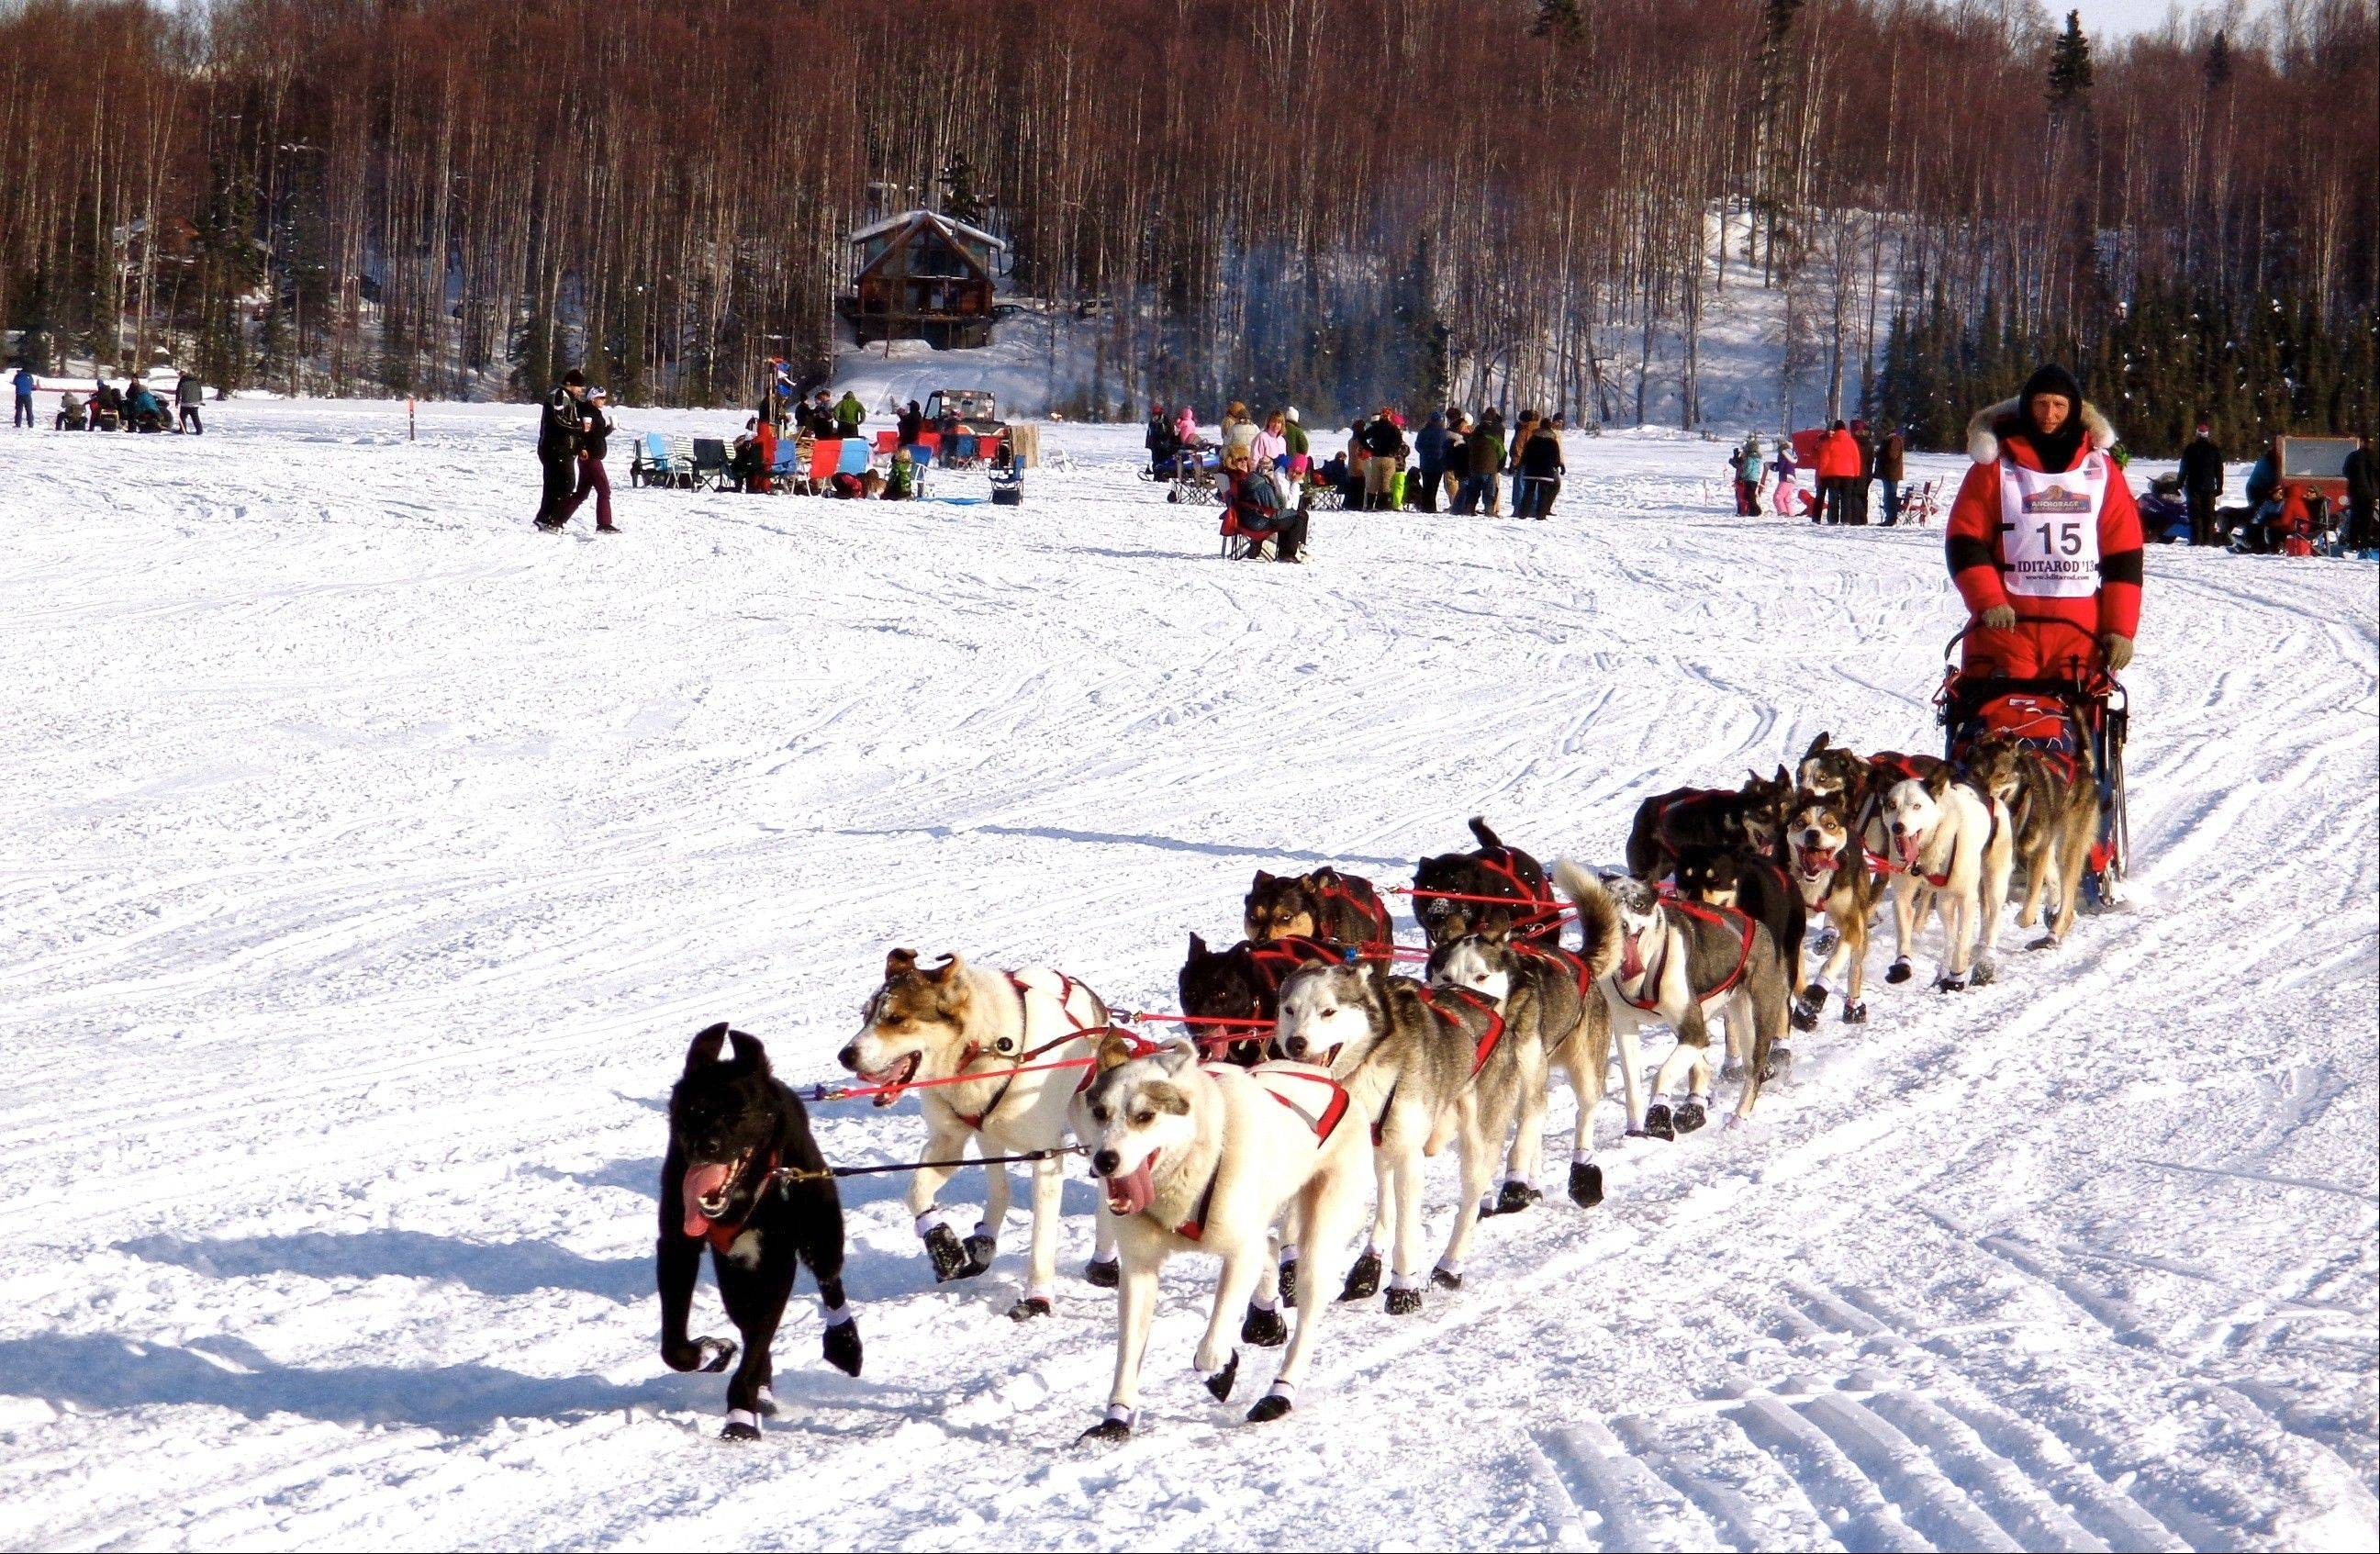 Charley Bejna of Addison competed in three races this year to qualify for the 2014 Iditarod Trail Sled Dog Race.